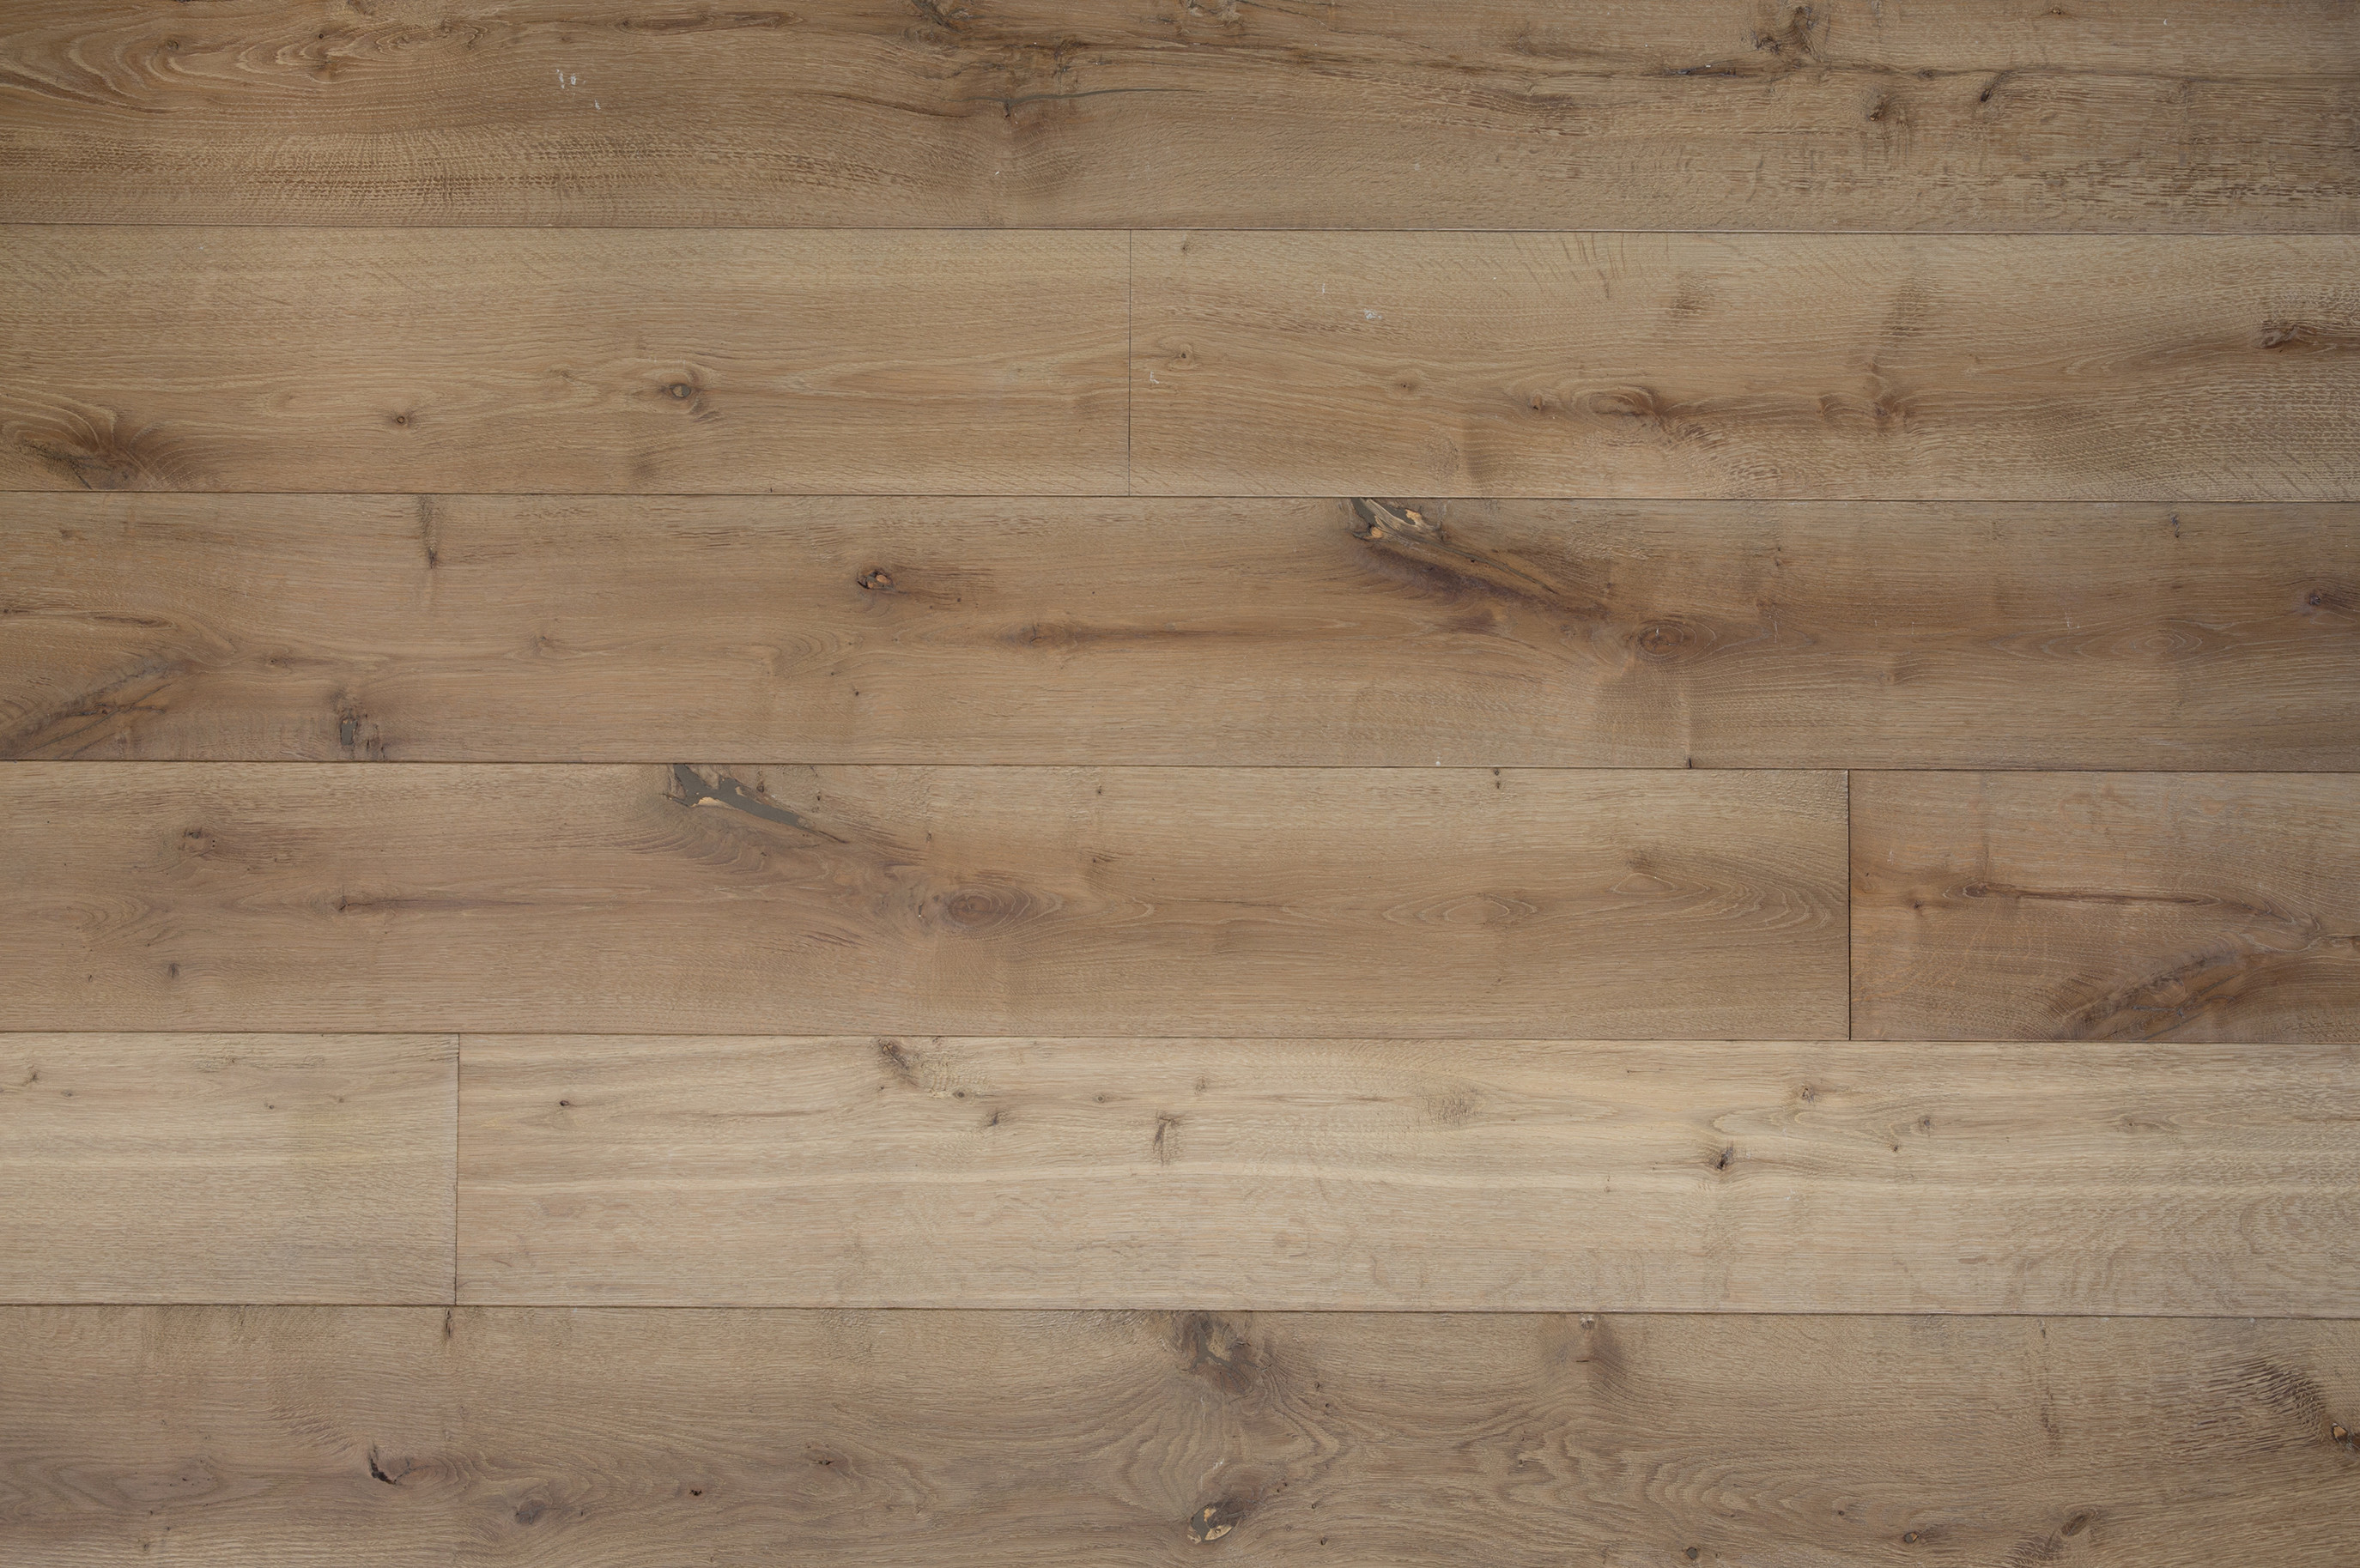 12 Trendy Hardwood Flooring Tips and Tricks 2021 free download hardwood flooring tips and tricks of driftwood natural duchateau for driftwood natural